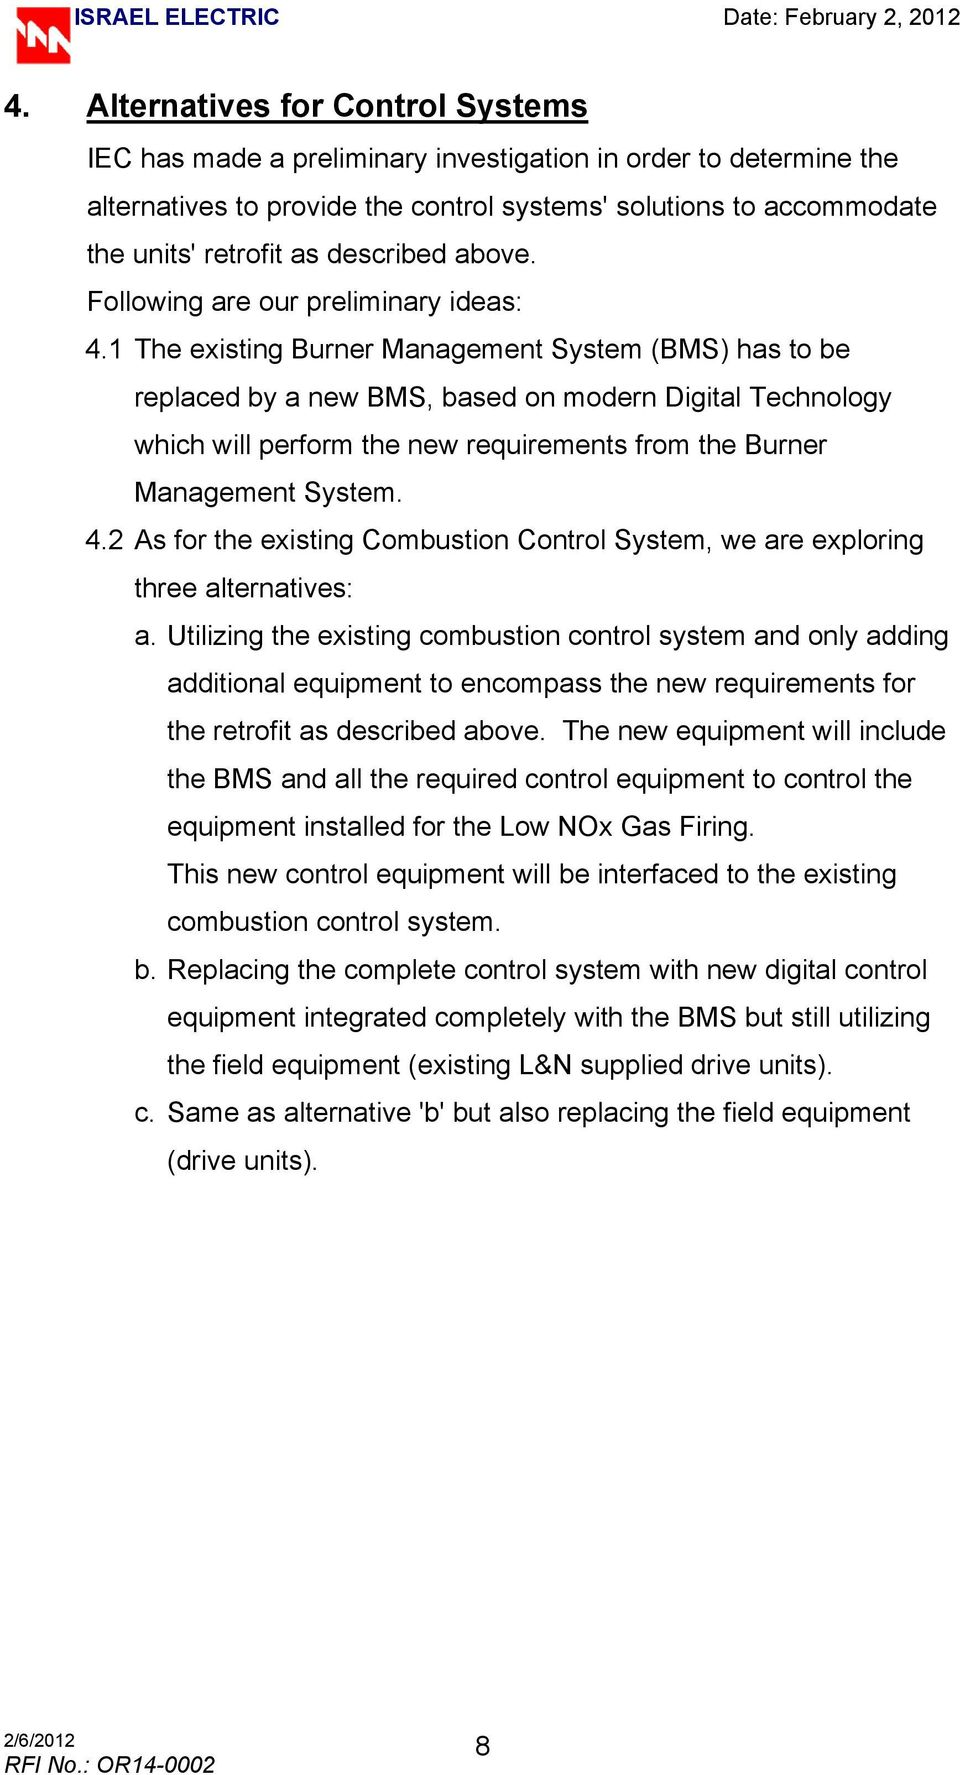 1 The existing Burner Management System (BMS) has to be replaced by a new BMS, based on modern Digital Technology which will perform the new requirements from the Burner Management System. 4.